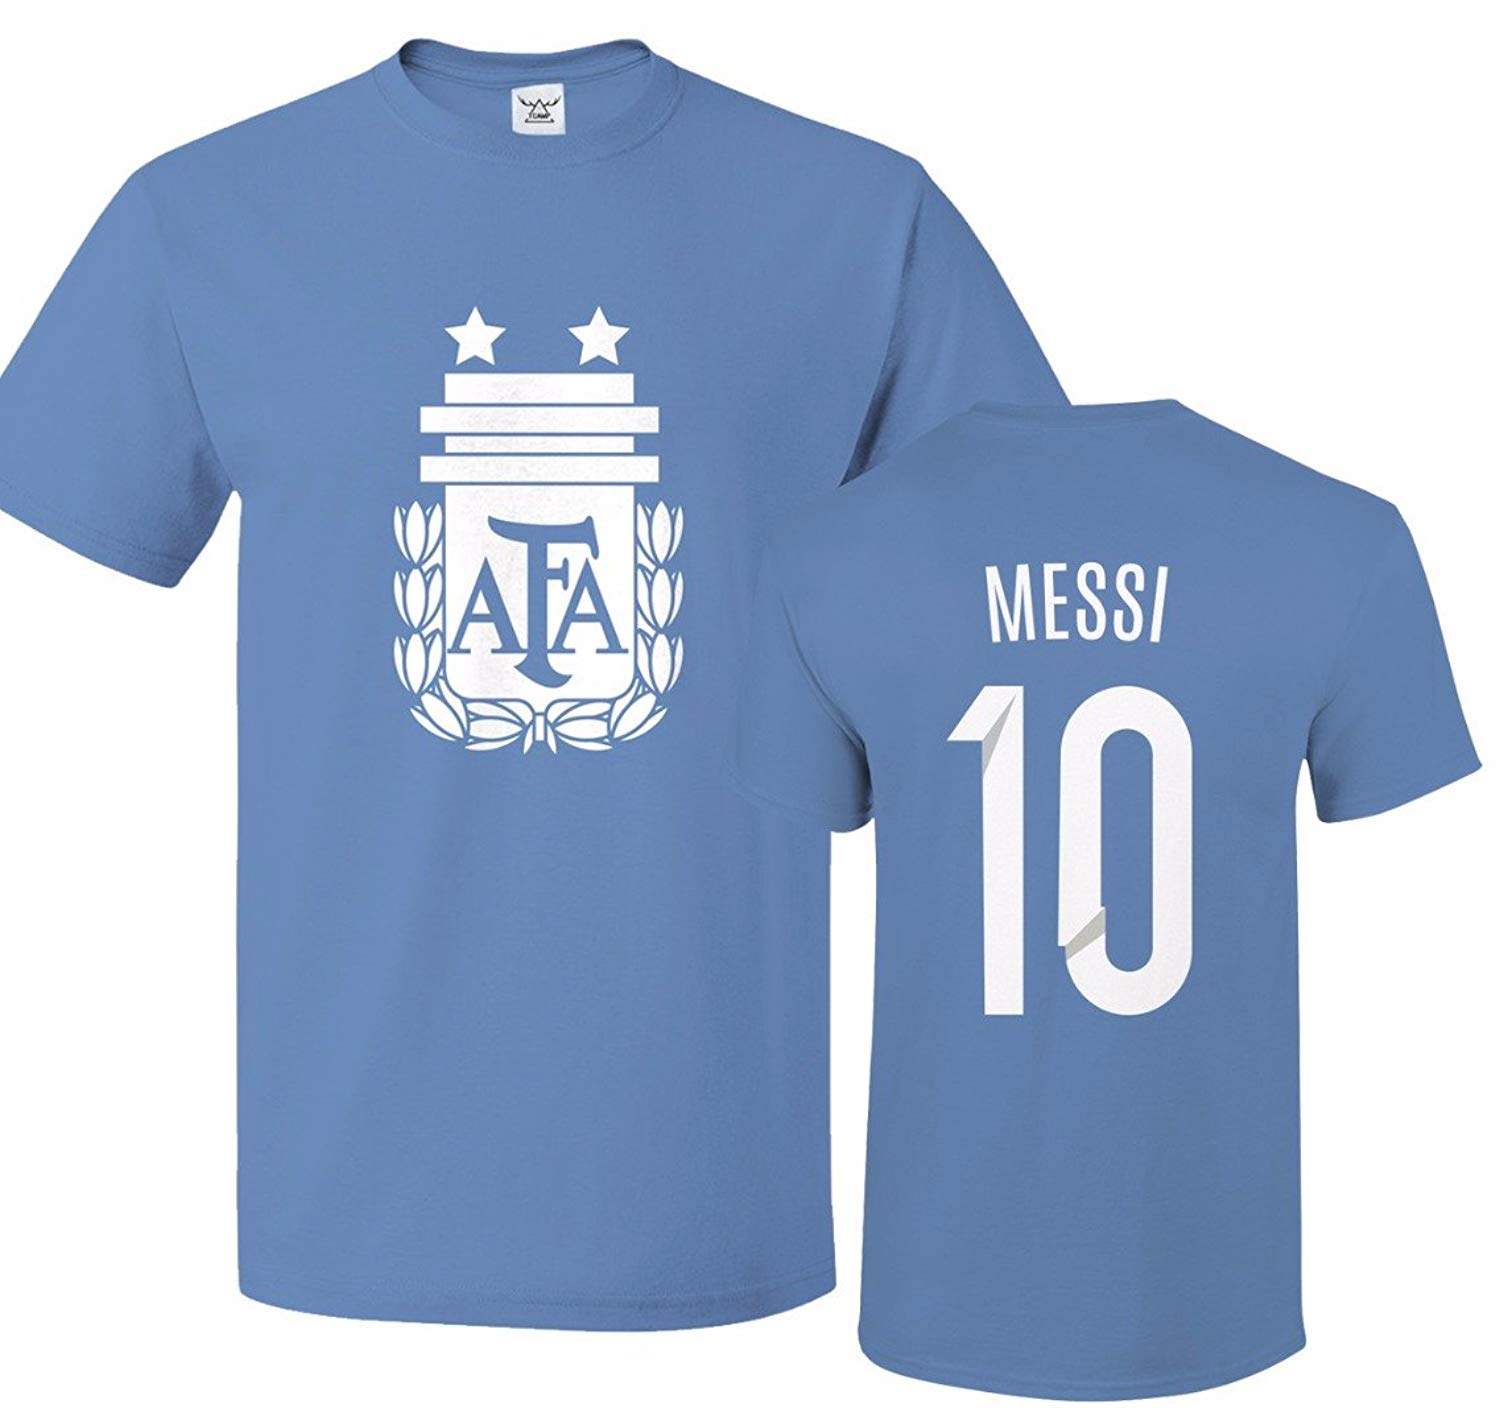 Cheap Argentina Training Shirt Find Deals Fashion Big Size T World Cup 2xl Get Quotations Tcamp Soccer Lionel Messi 10 Jersey Men